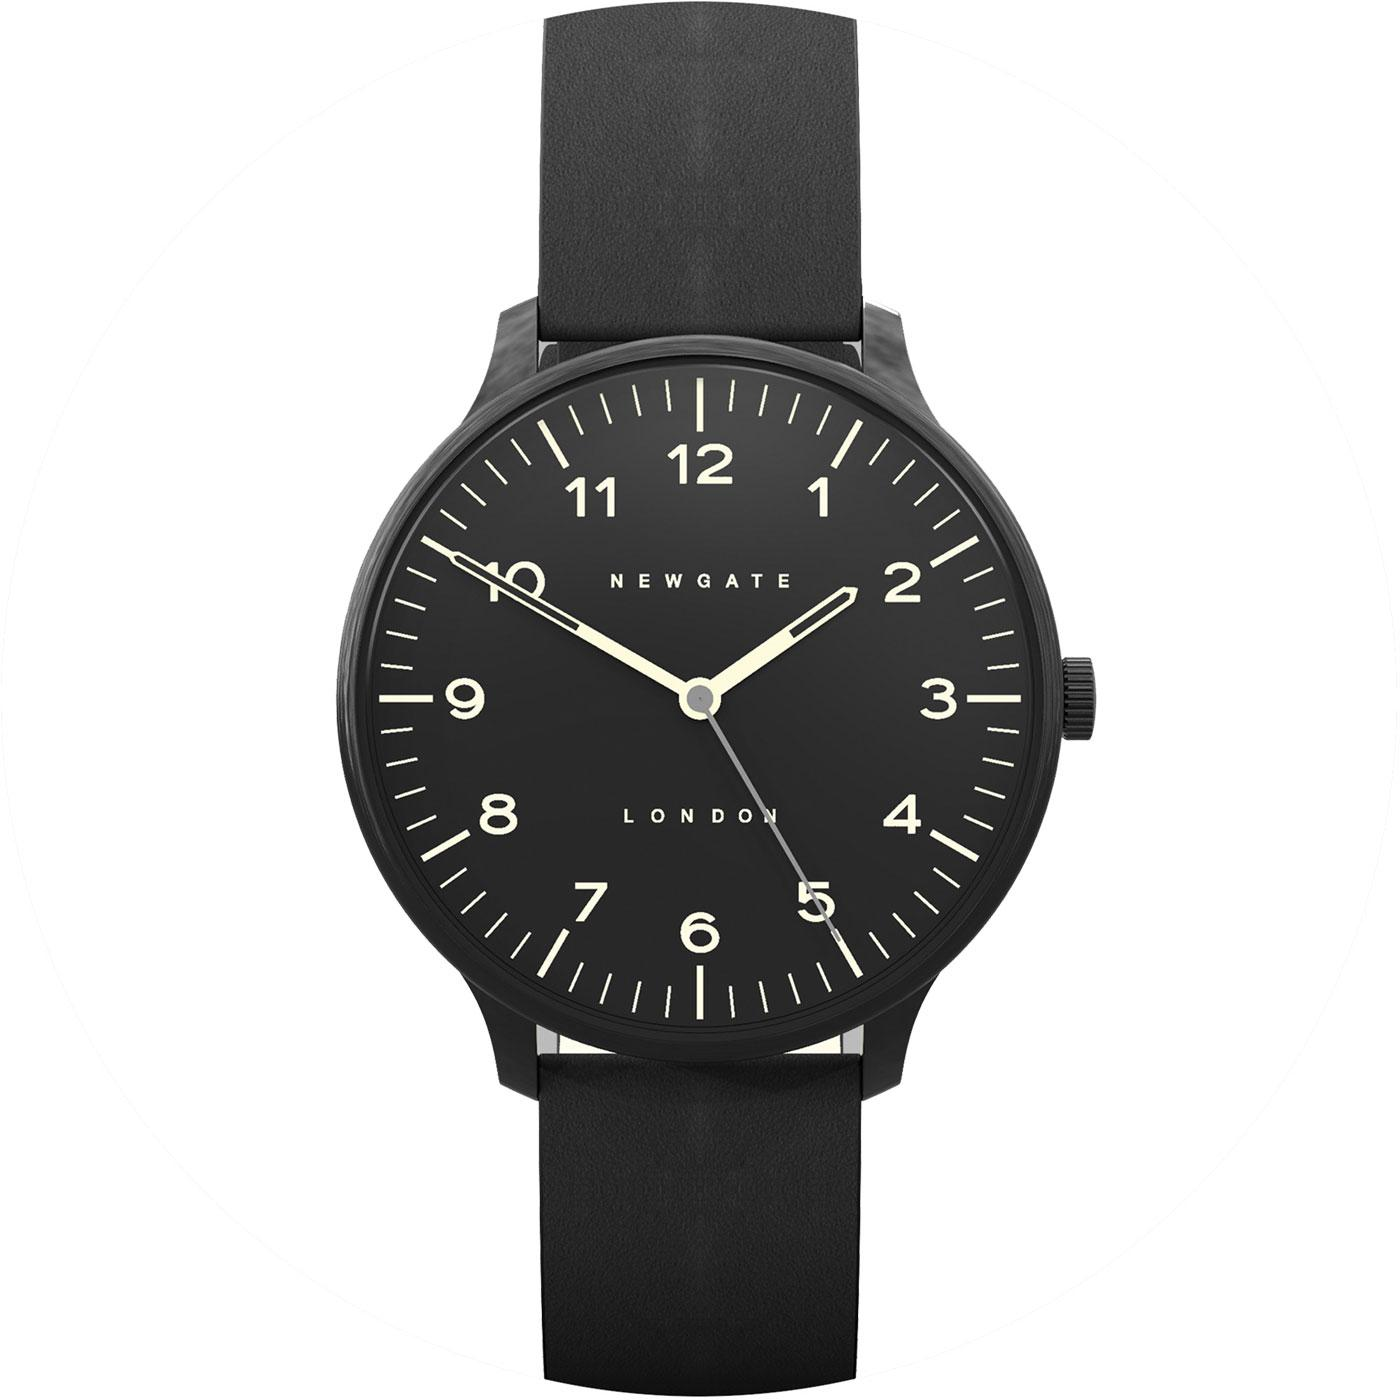 The Blip NEWGATE CLOCKS Retro Leather Watch Black